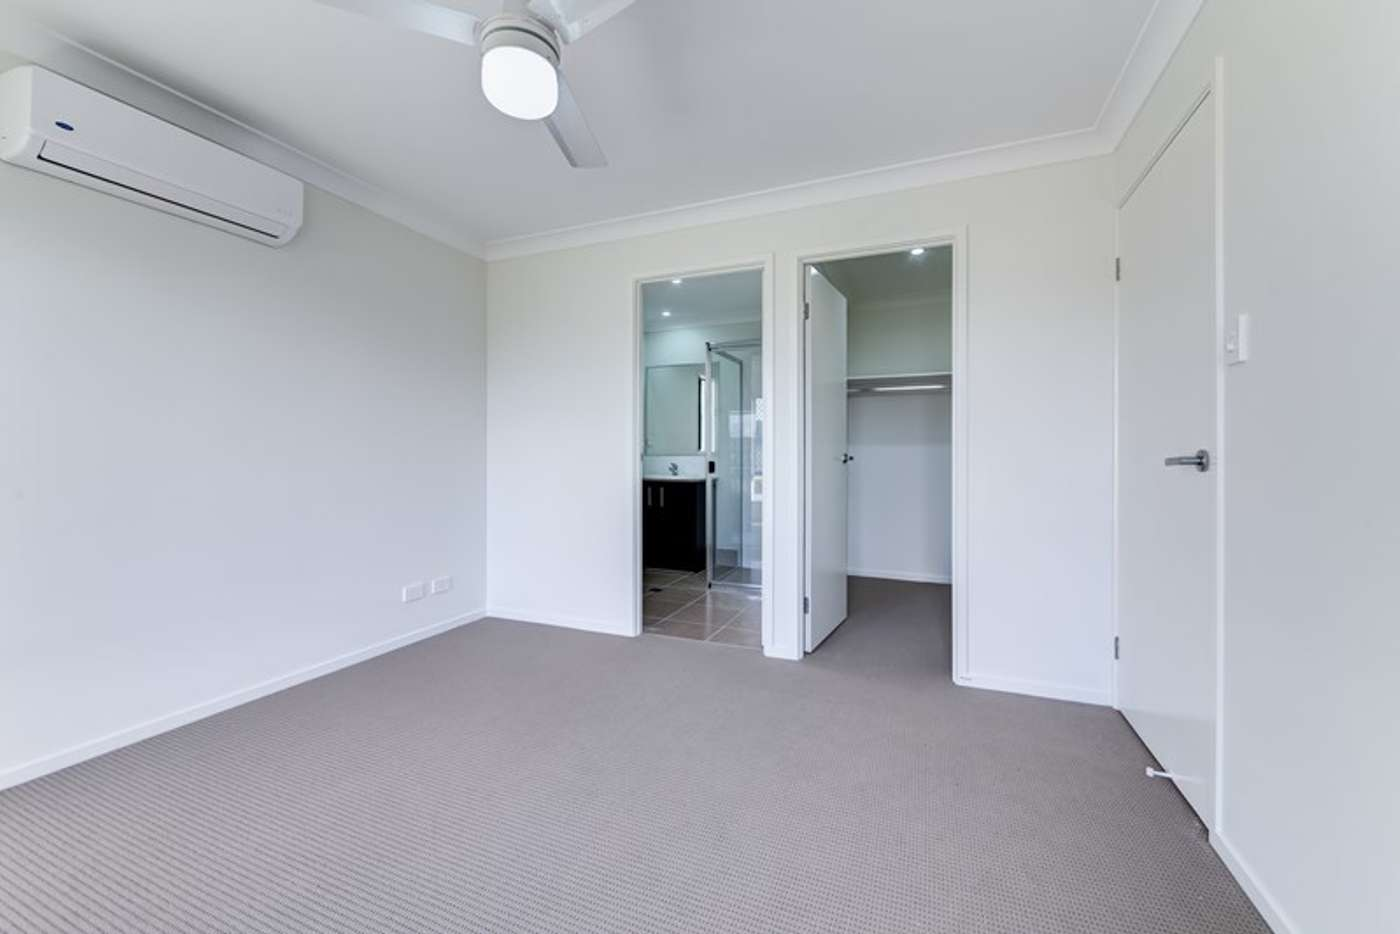 Sixth view of Homely house listing, 8 Barcoo Lane, Pelican Waters QLD 4551